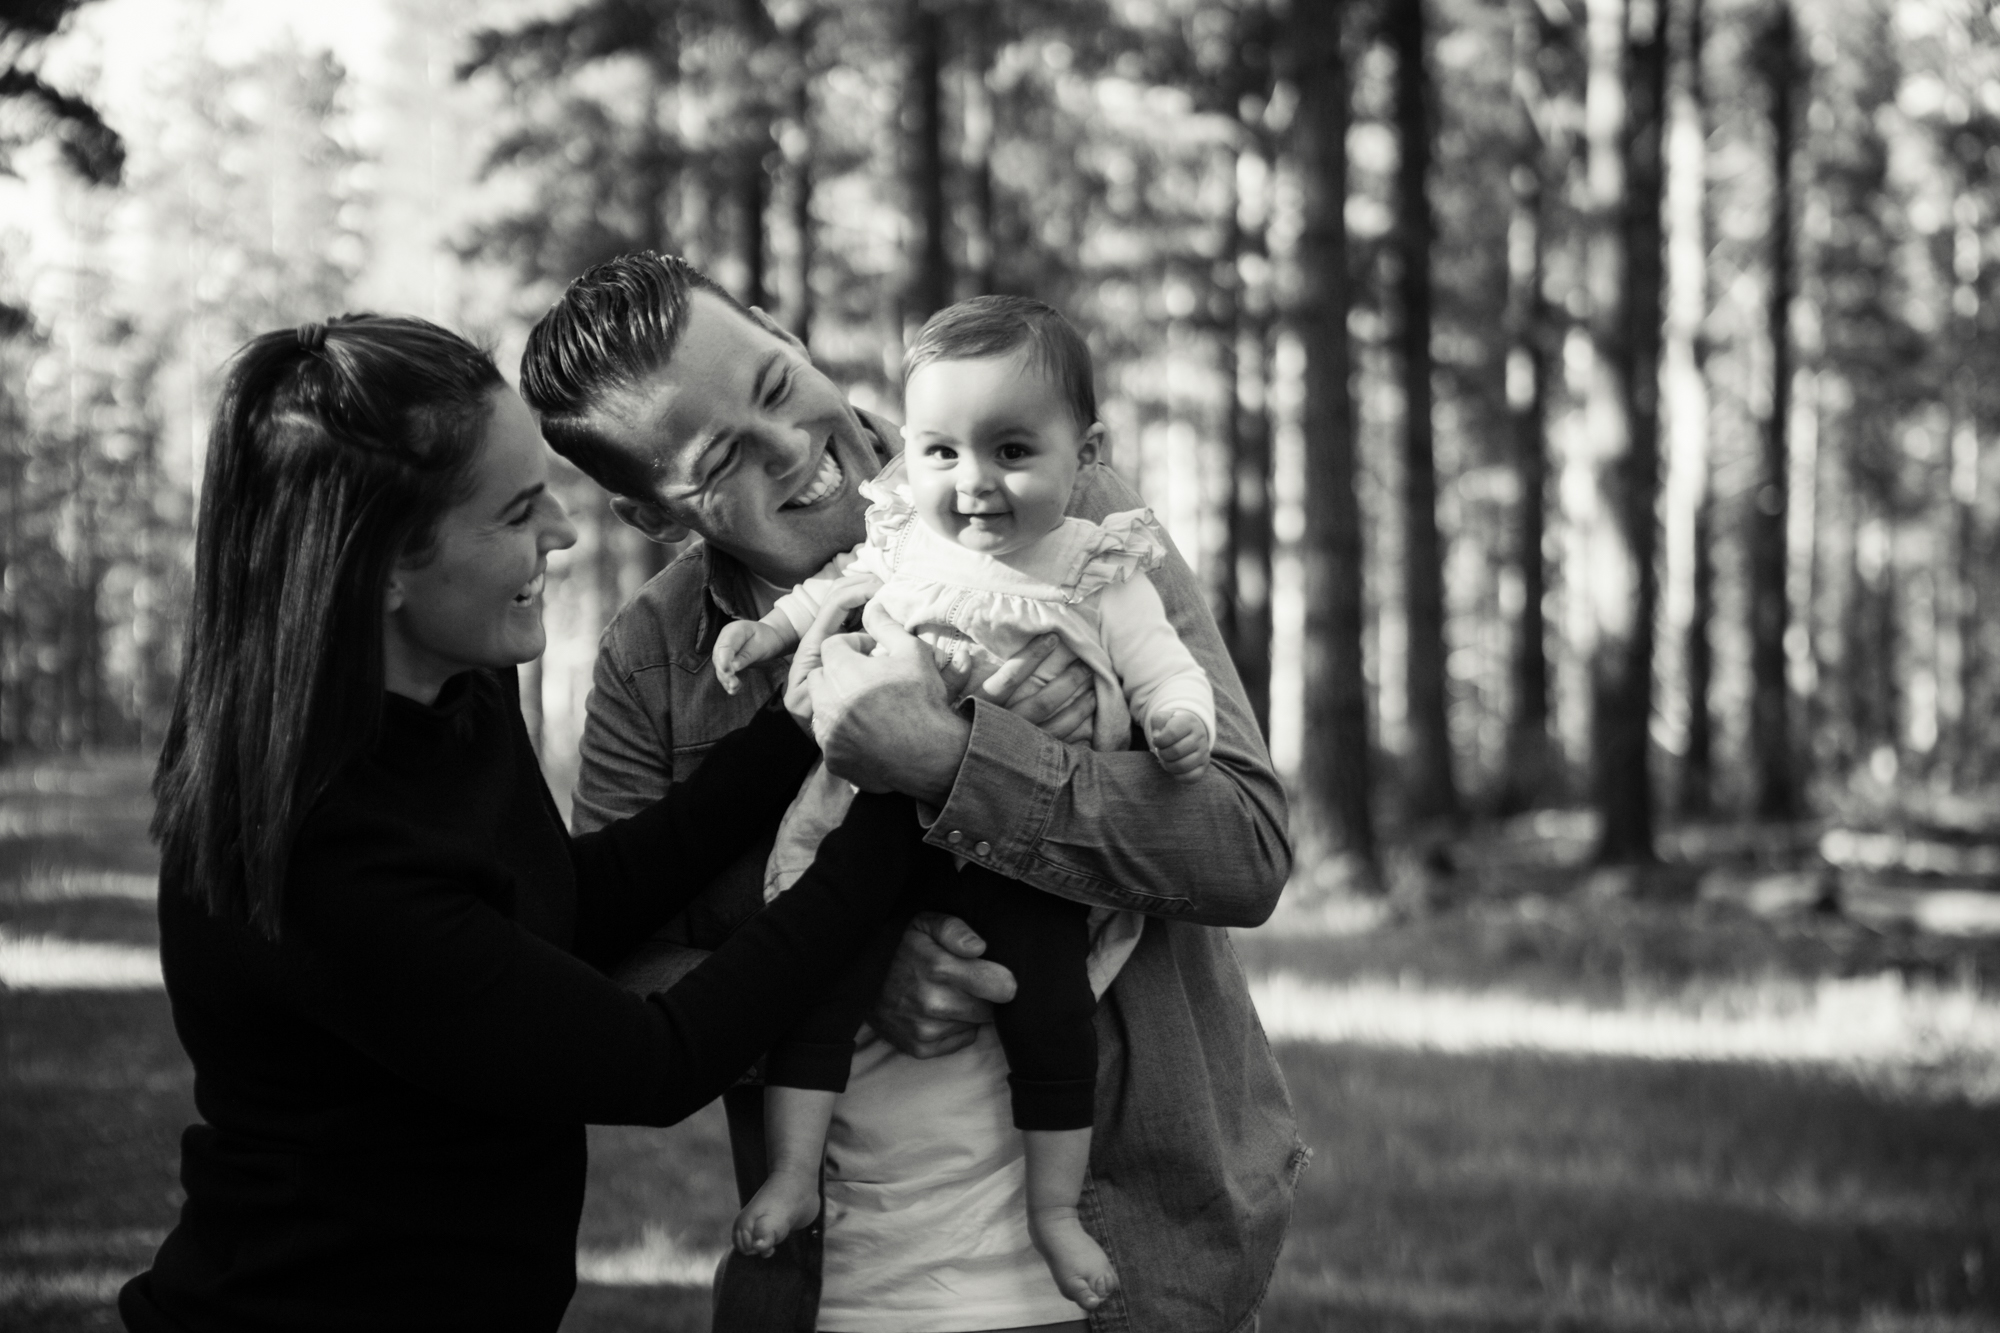 maisie_familyphotos_kuitpo_forest_adelaide_wedding_portrait_lifestyle_photographer_natural_forest_southaustralia_photography-15